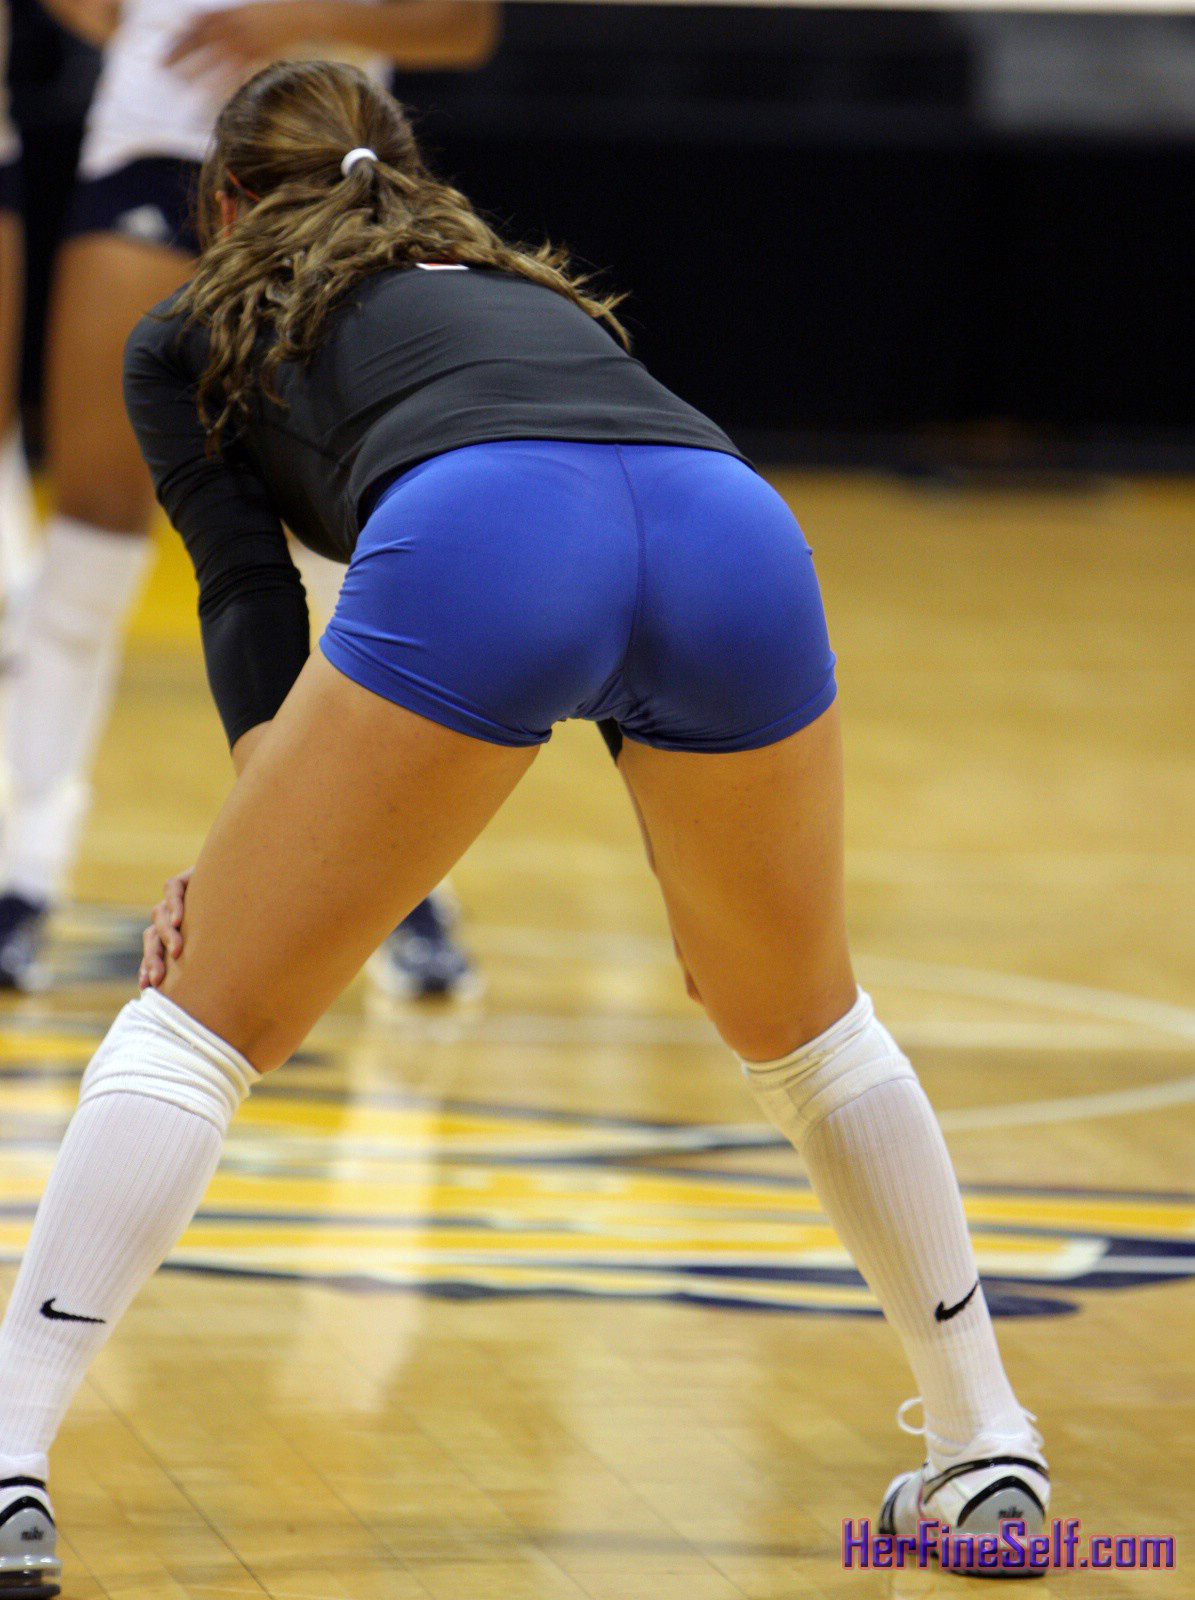 Sexy Spandex Volleyball Bottoms Gallery  Total Pro Sports-3698